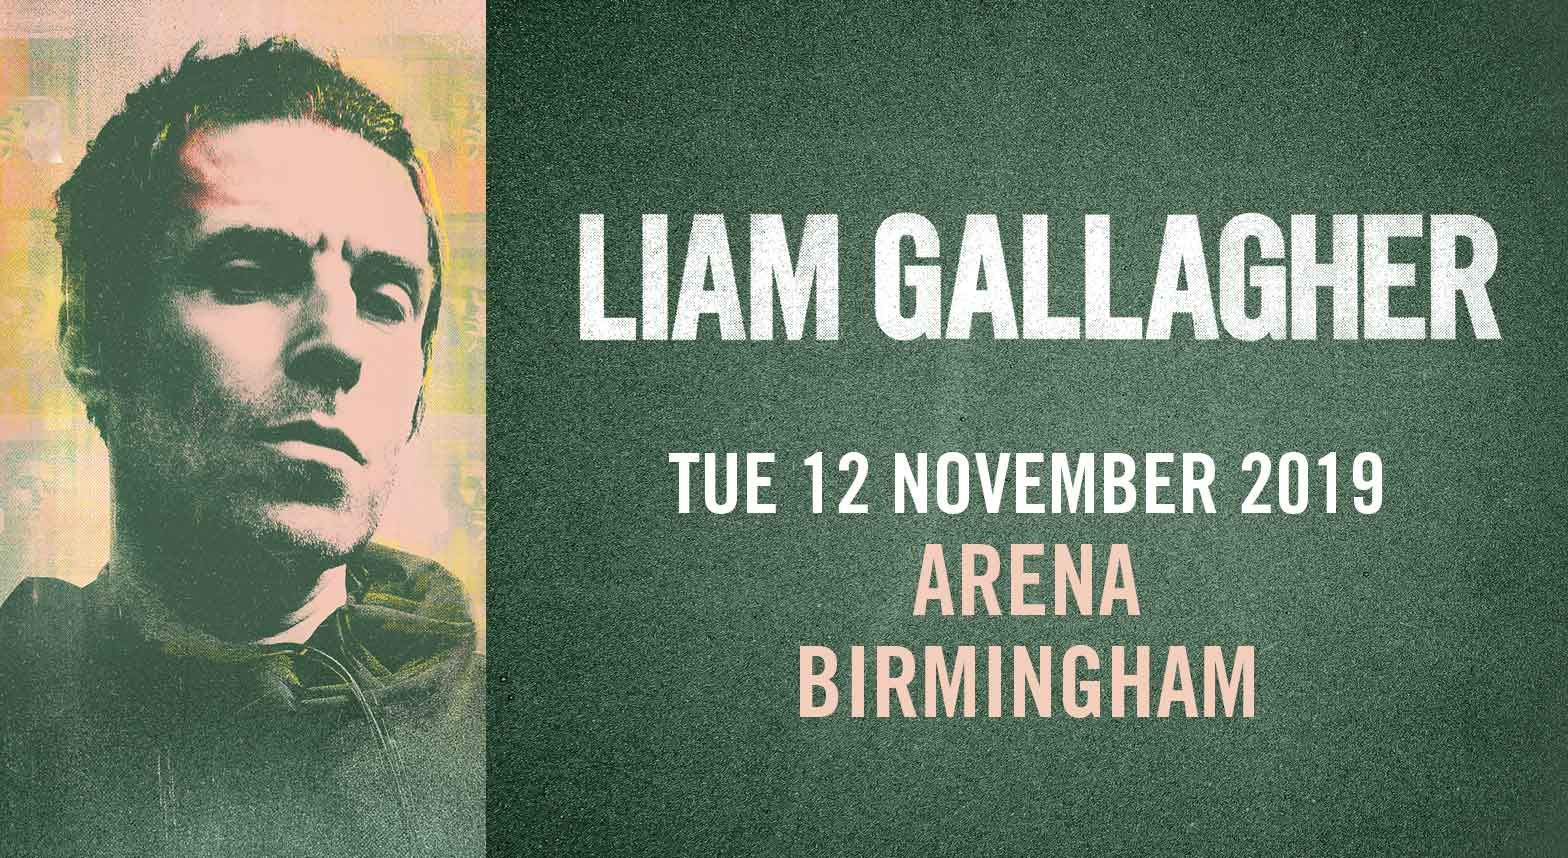 liam-gallagher-arenasV1.jpg